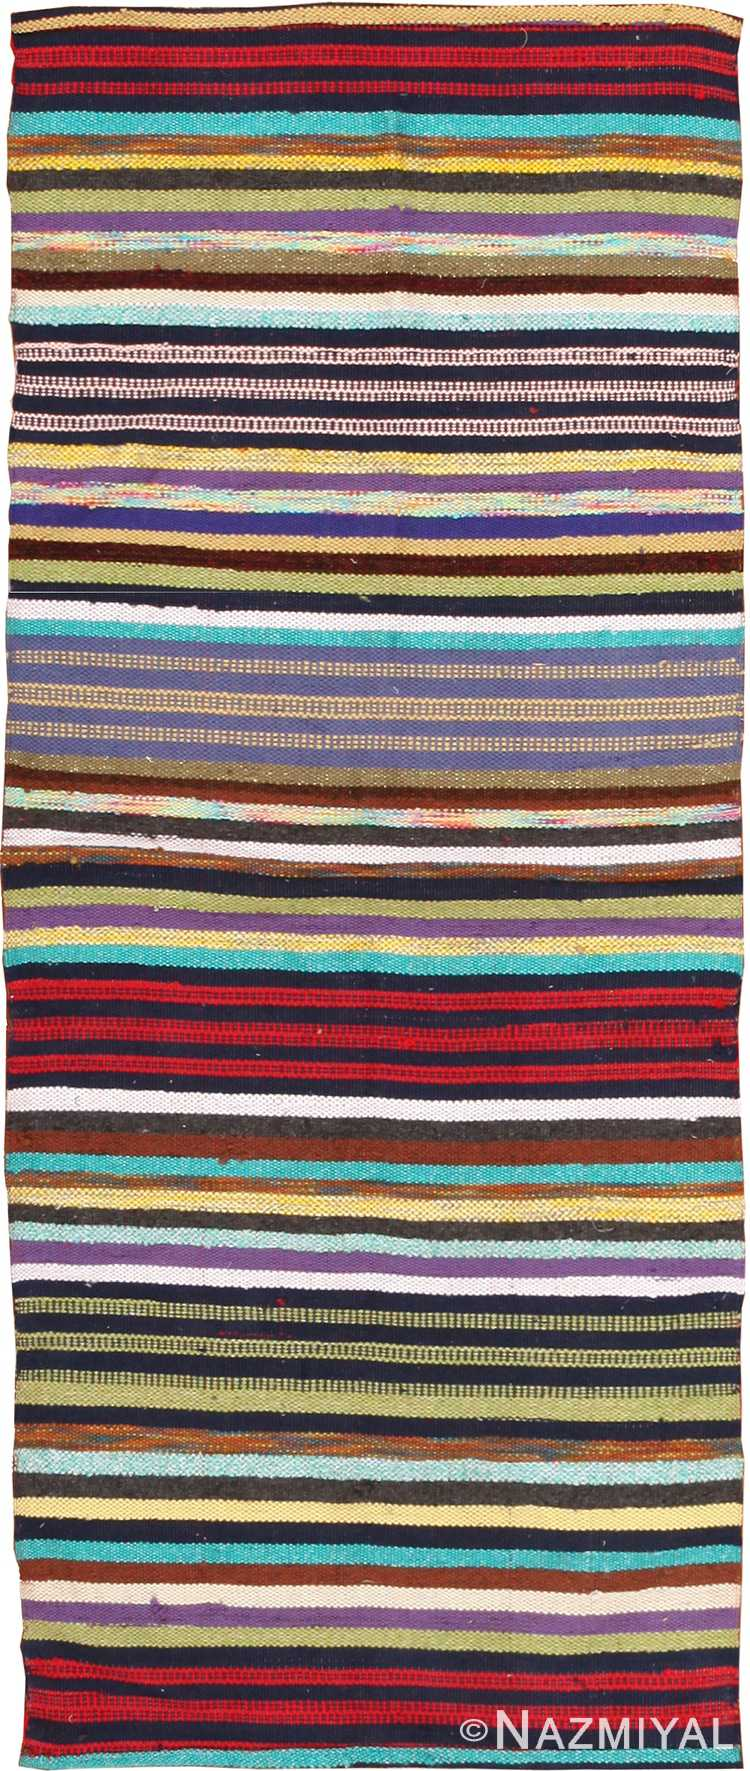 Vintage Swedish Rag Runner Rug 46662 Nazmiyal Antique Rugs